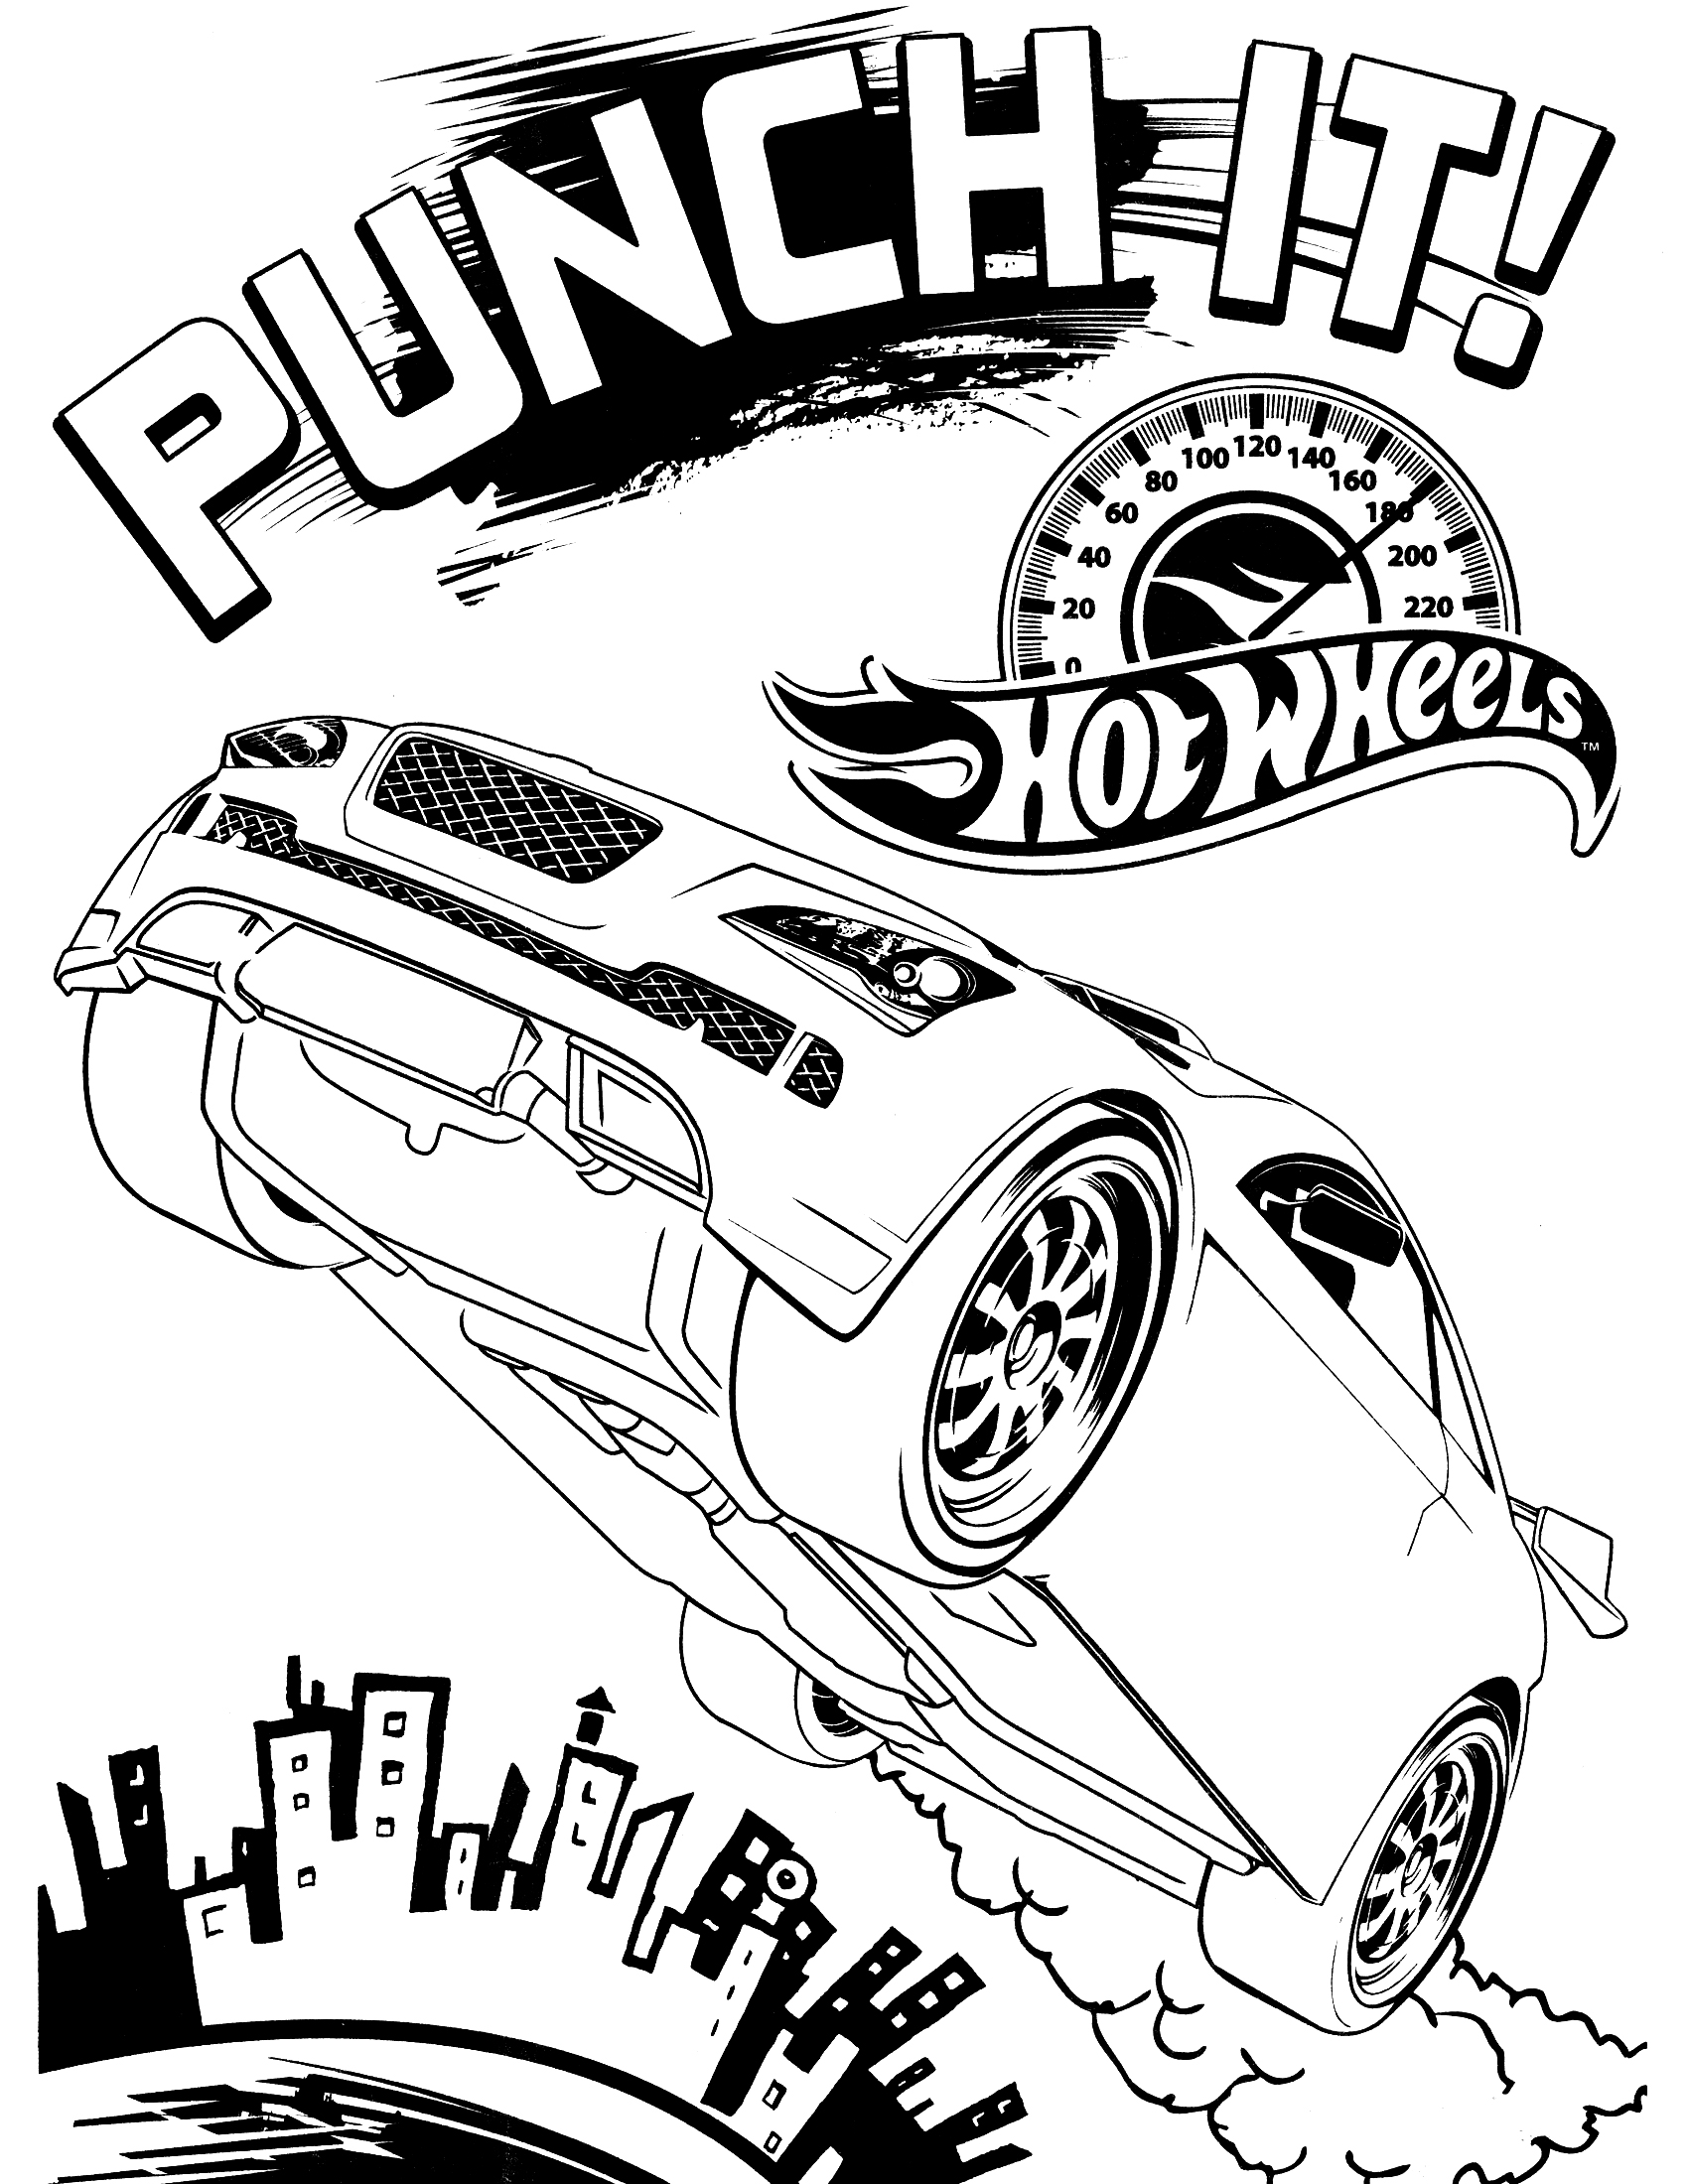 hotwheels colouring pages free printable hot wheels coloring pages for kids colouring hotwheels pages